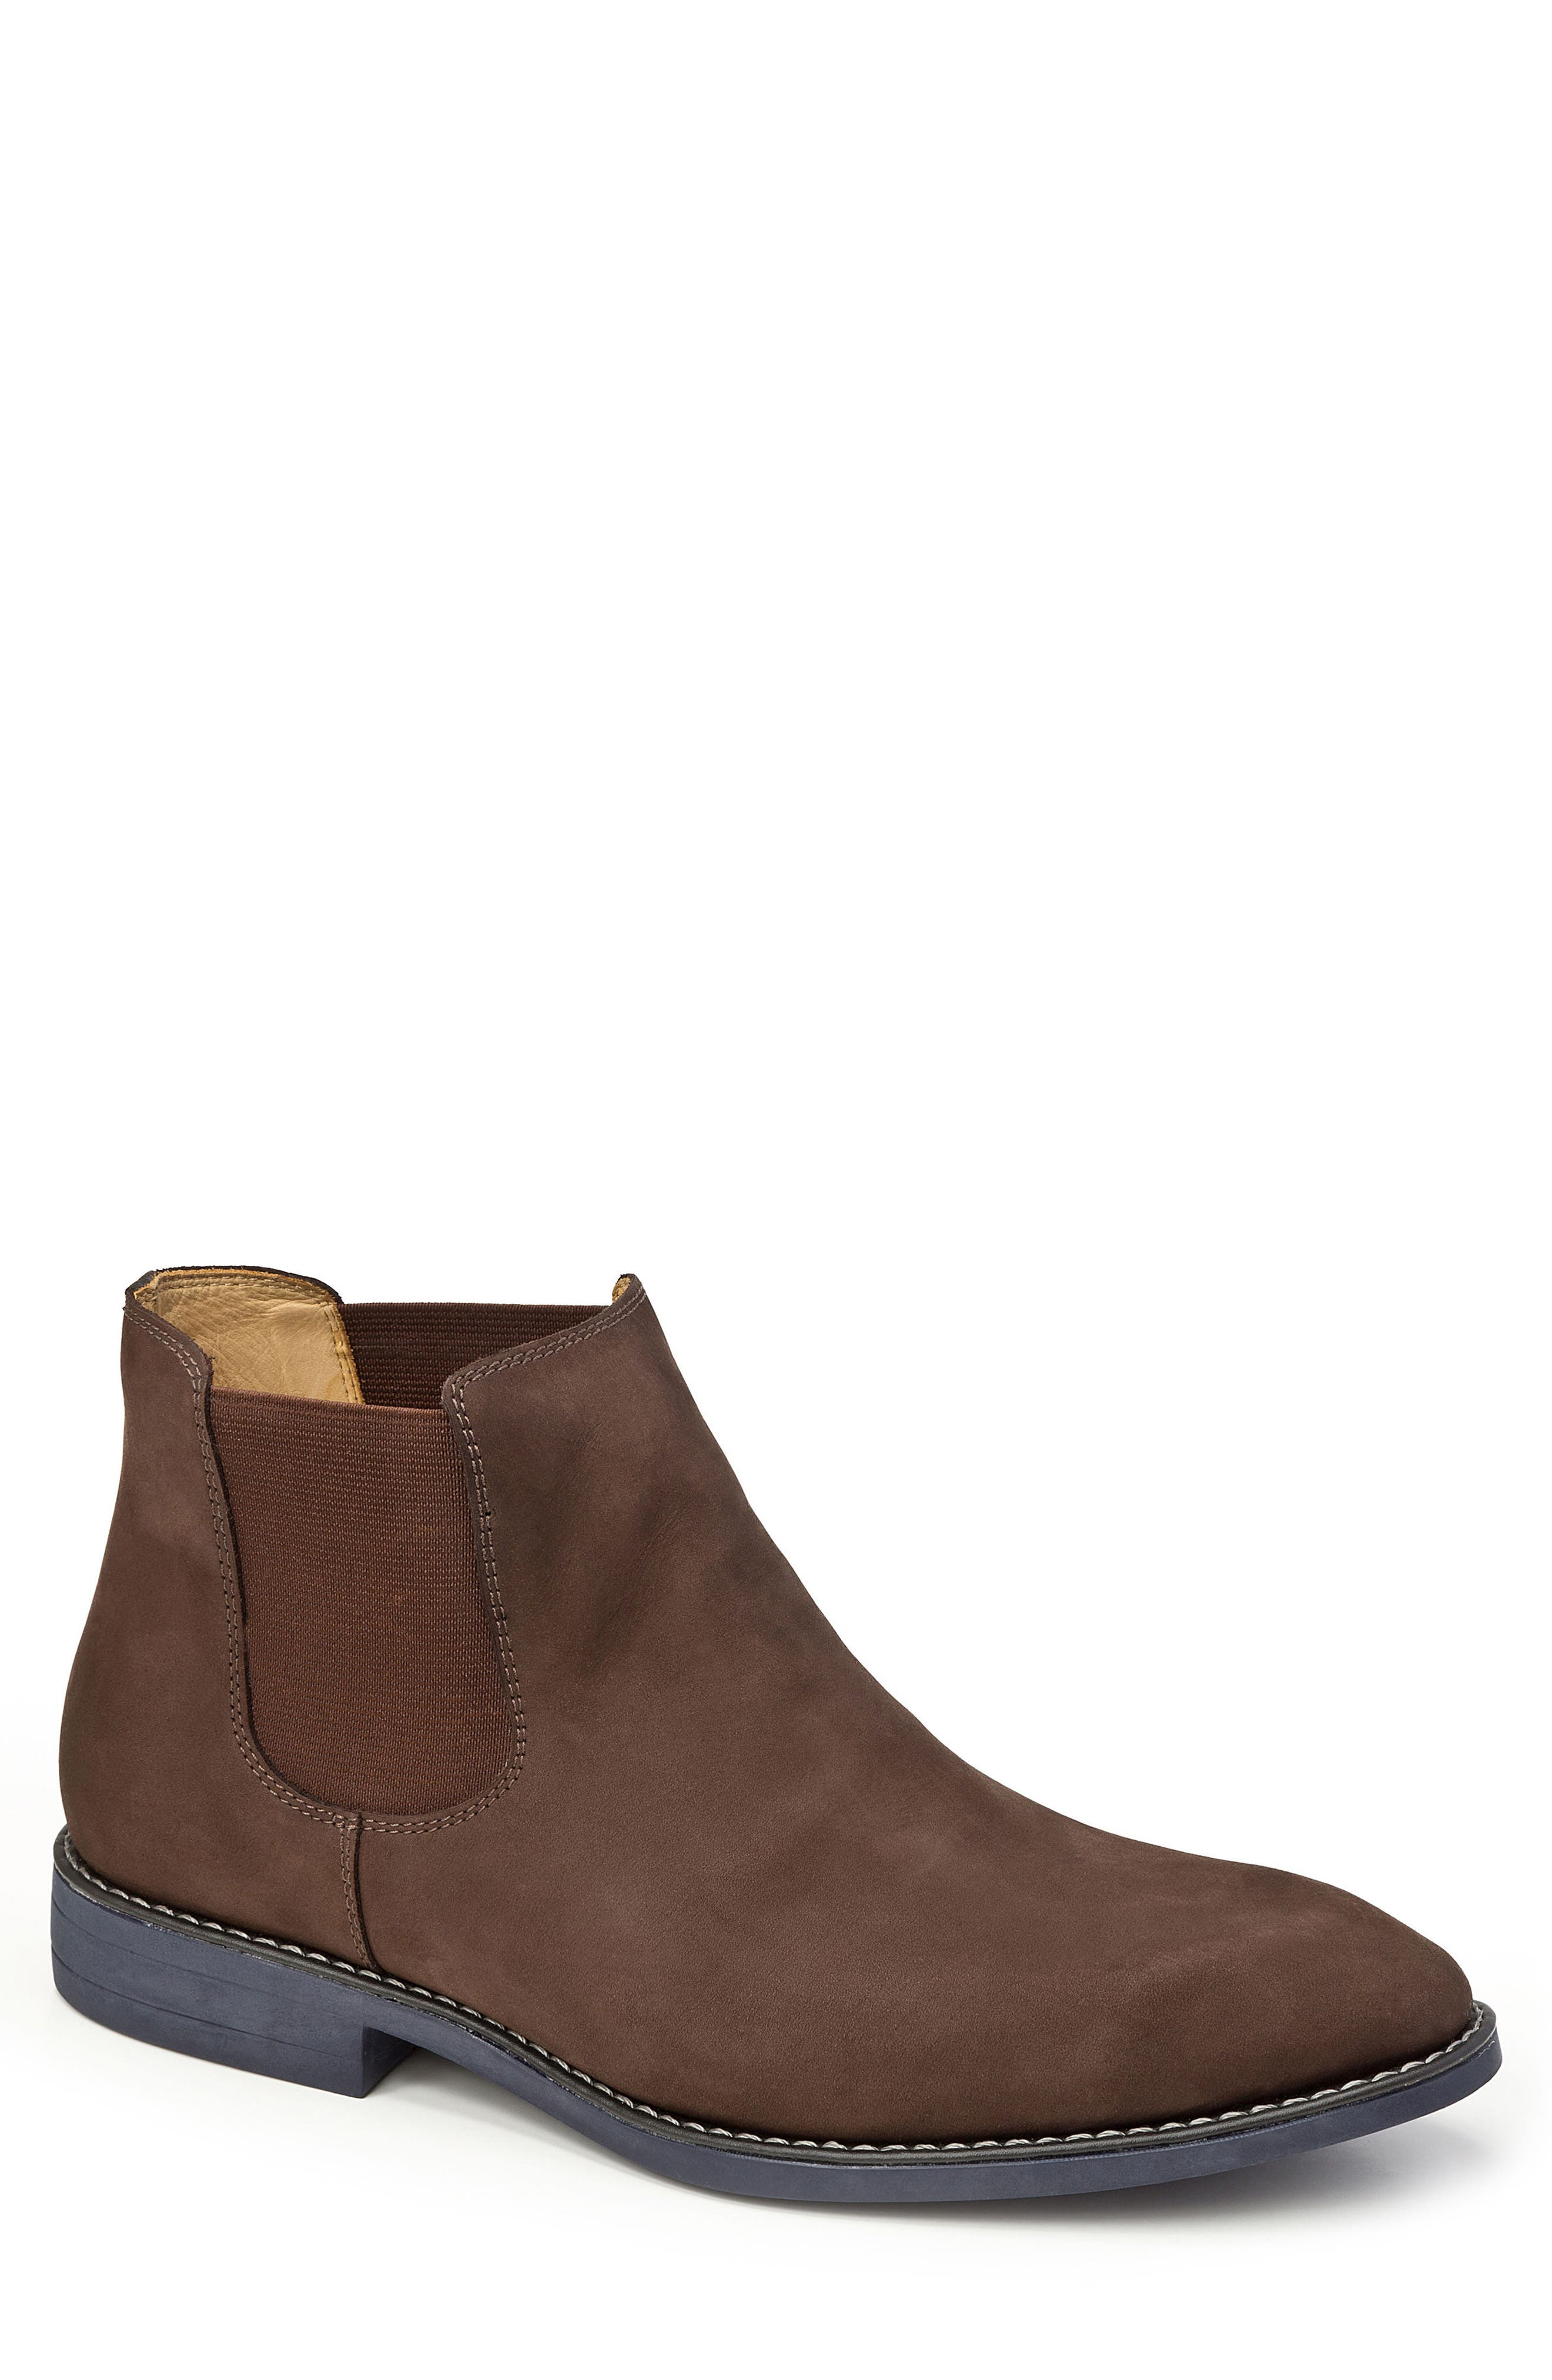 Marcus Chelsea Boot,                         Main,                         color, Brown Nubuck Leather